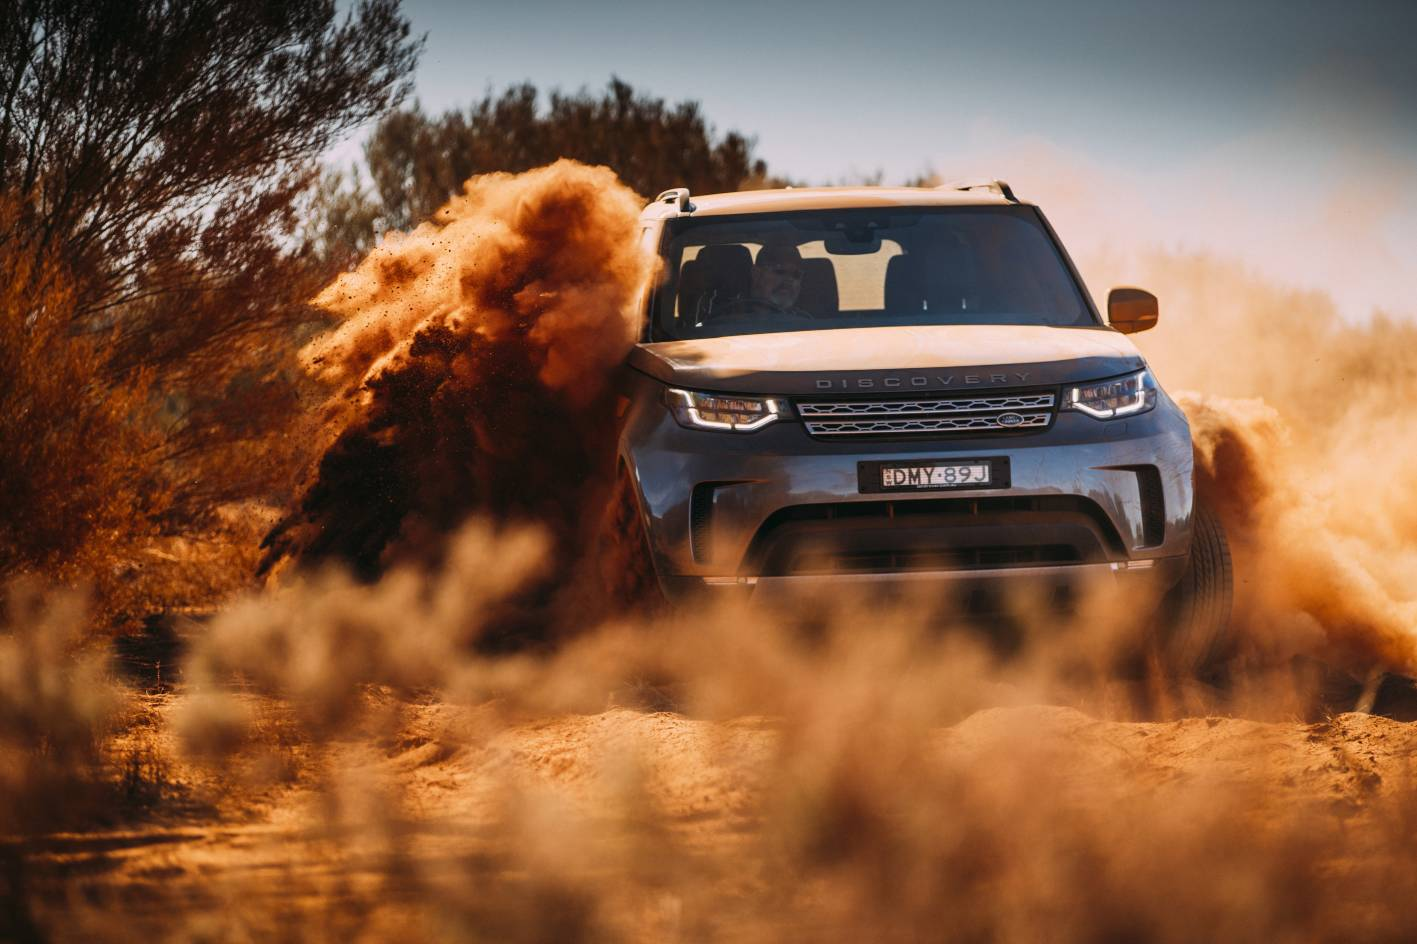 2014 Land Rover Discovery 4 SDV6 HSE Review – A 4×4 Beast ...